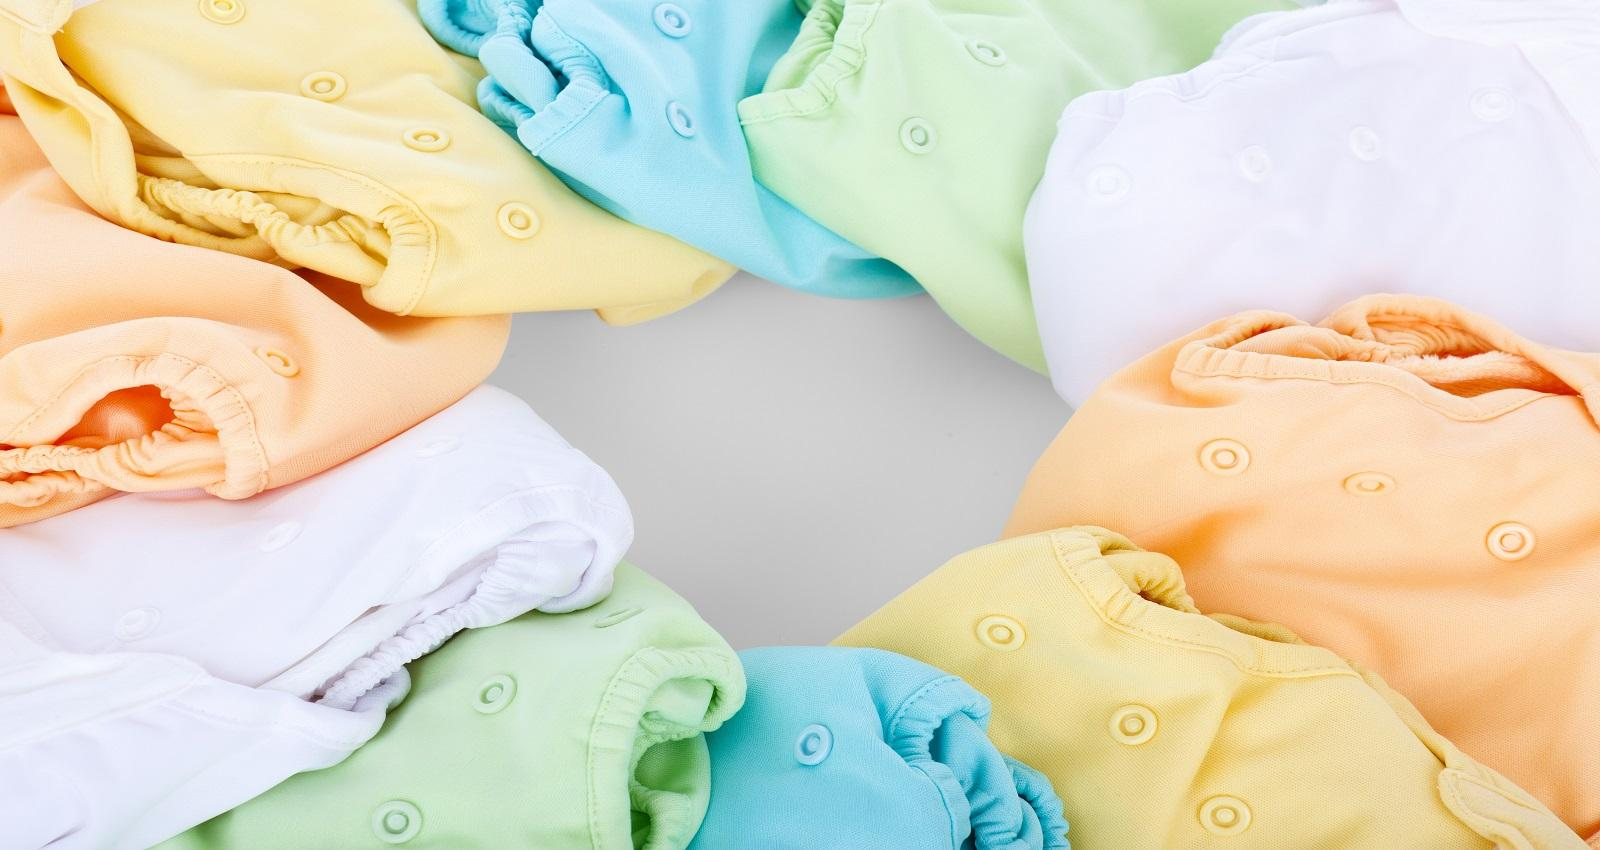 baby-cloth-clothing-color-41165-1495717505597.jpeg